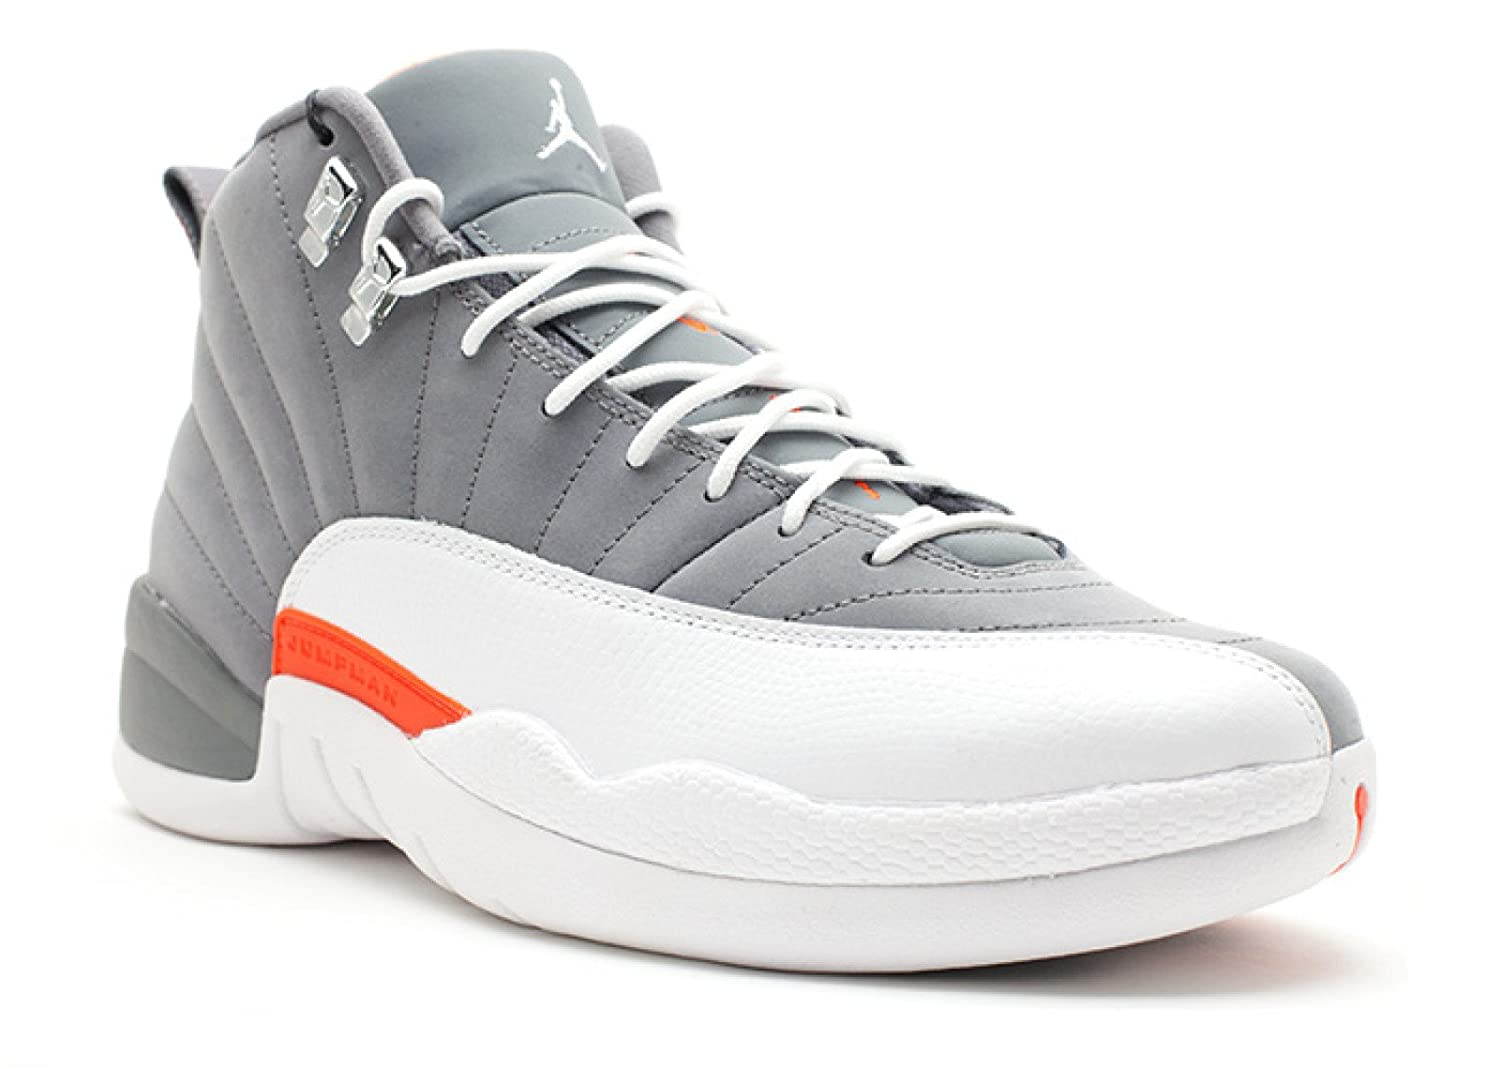 huge selection of 823e6 2c889 Amazon.com | Jordan Air 12 XII Retro Frozen Moments Cool ...